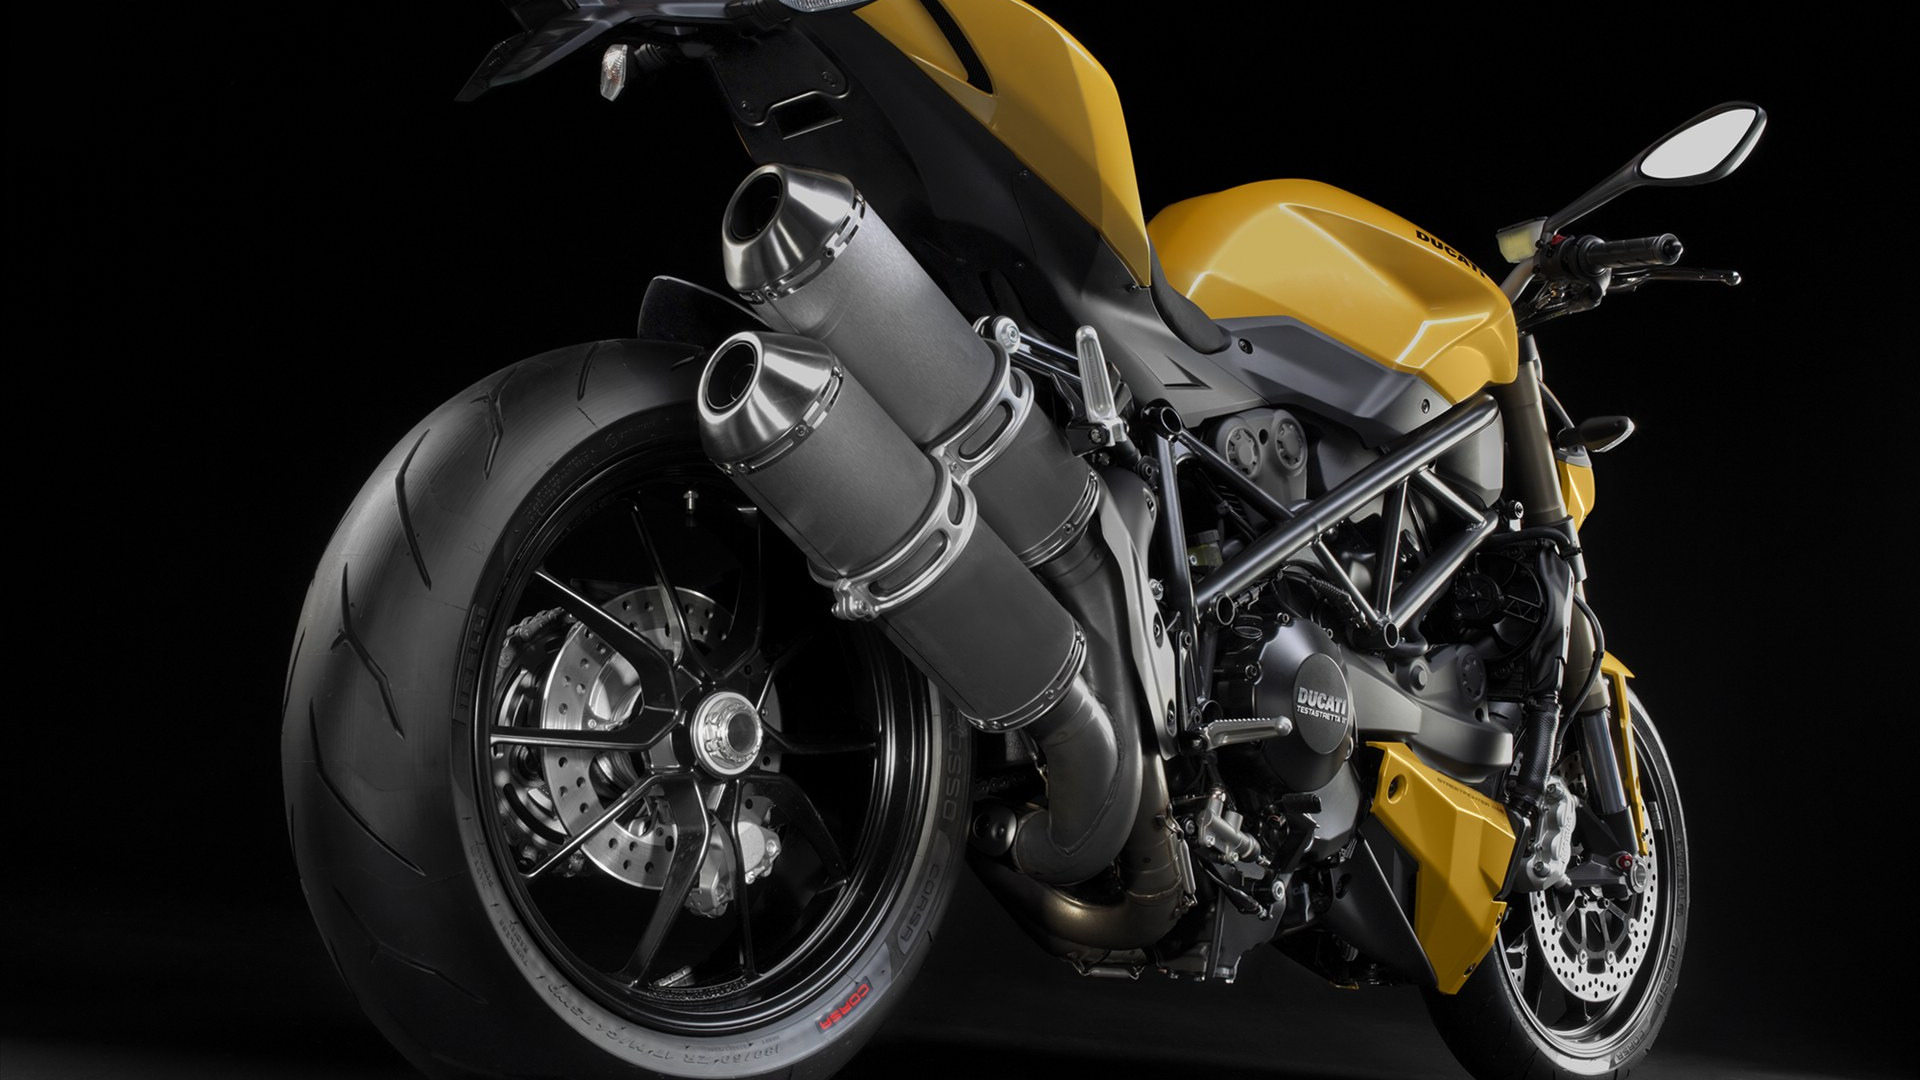 Exceptionnel 1920x1080 Yellow Ducati Streetfighter 848 Rear Angle Desktop PC And Mac  Wallpaper